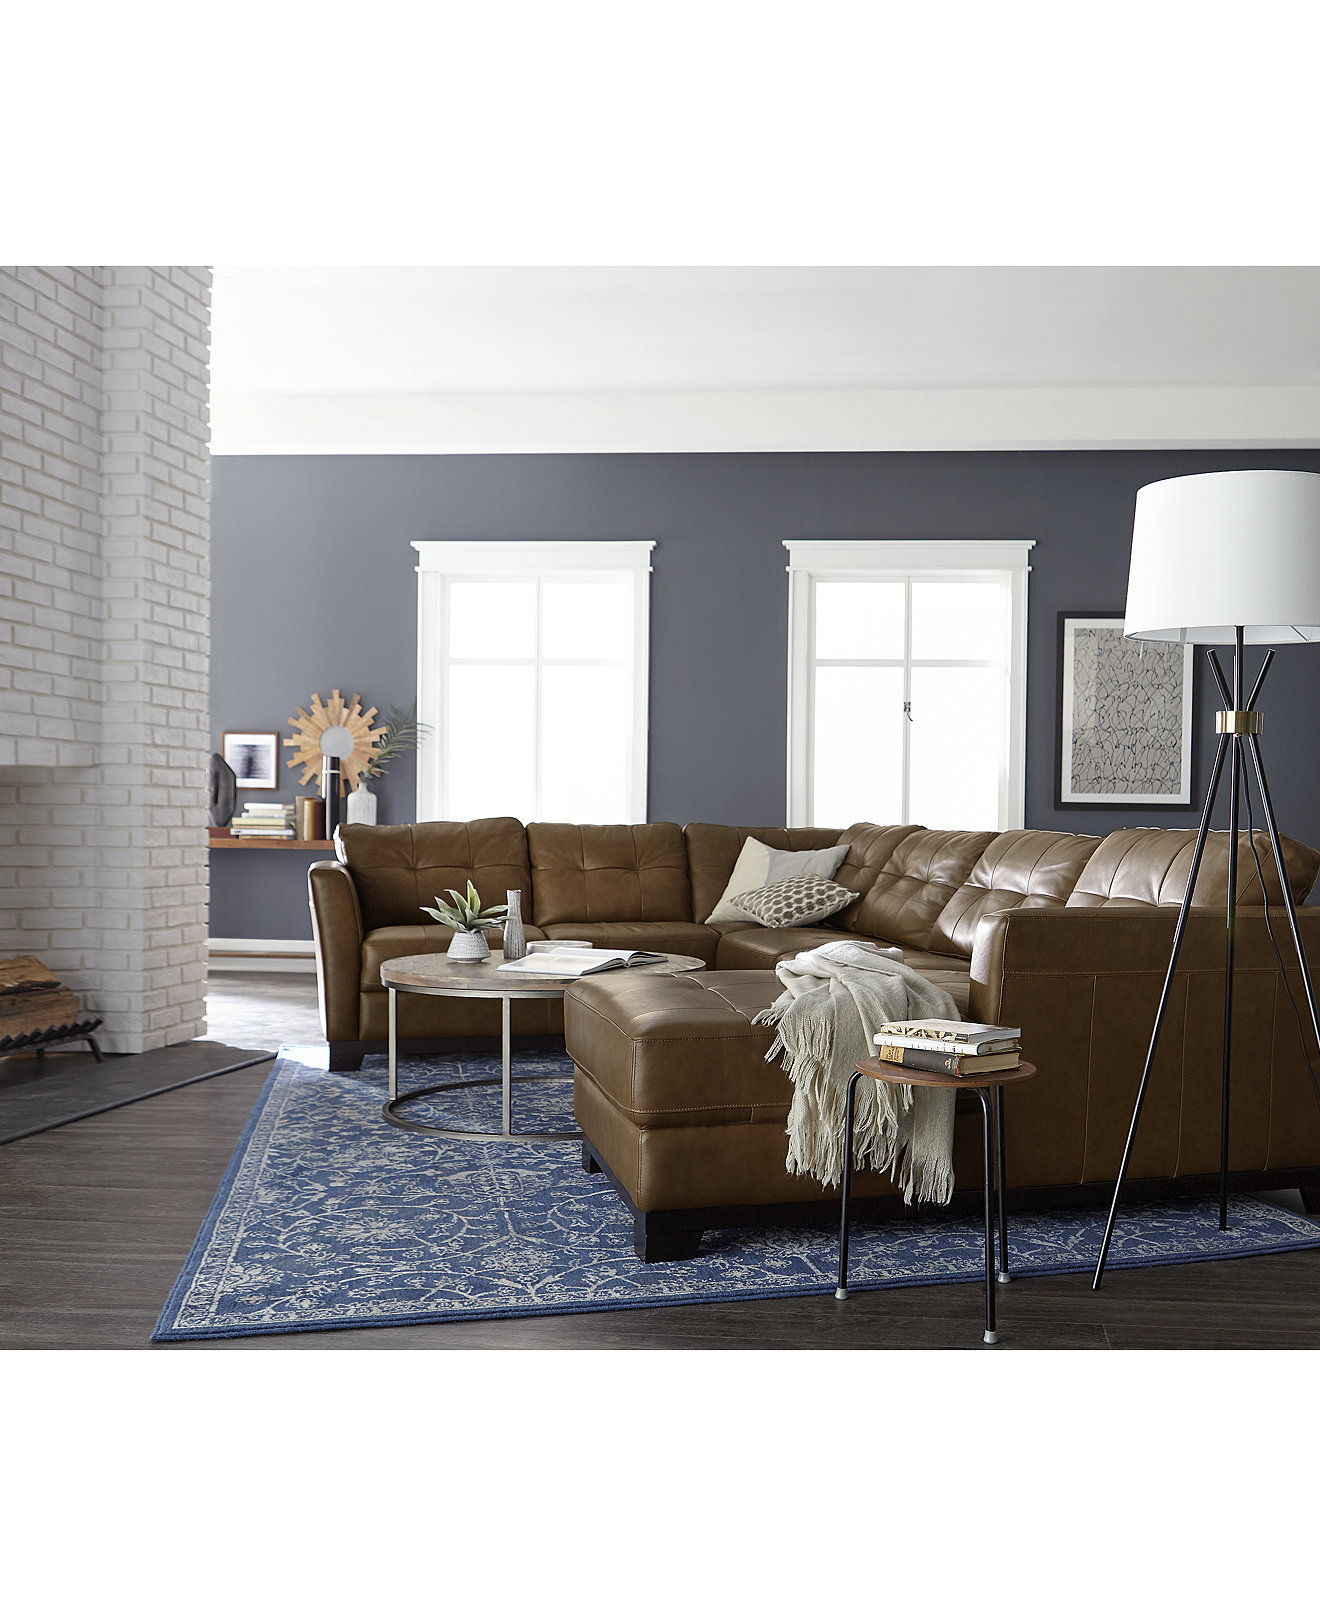 Leather Furniture For Living Room Living Room Furniture Sets Macys